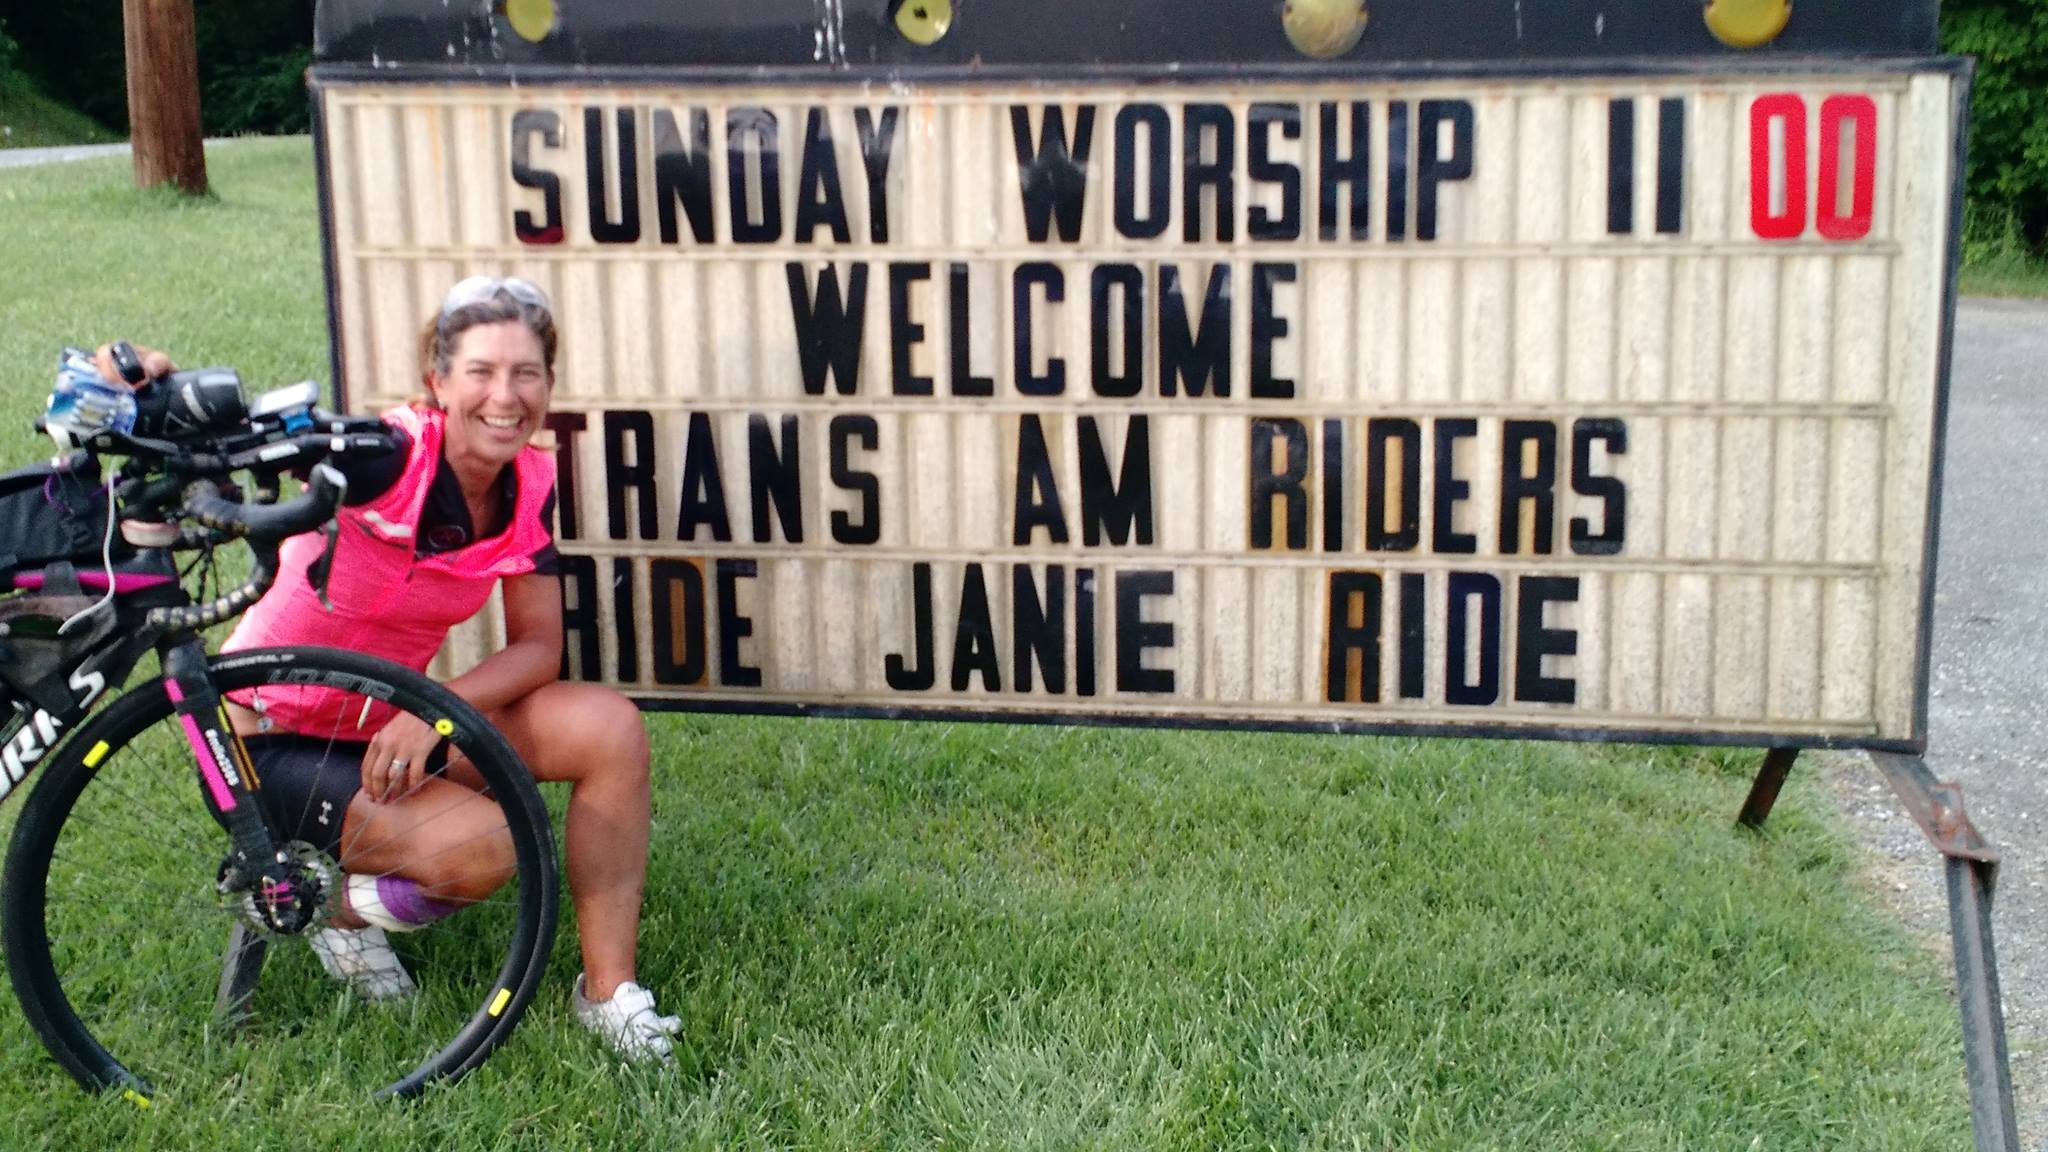 ride_janie_ride